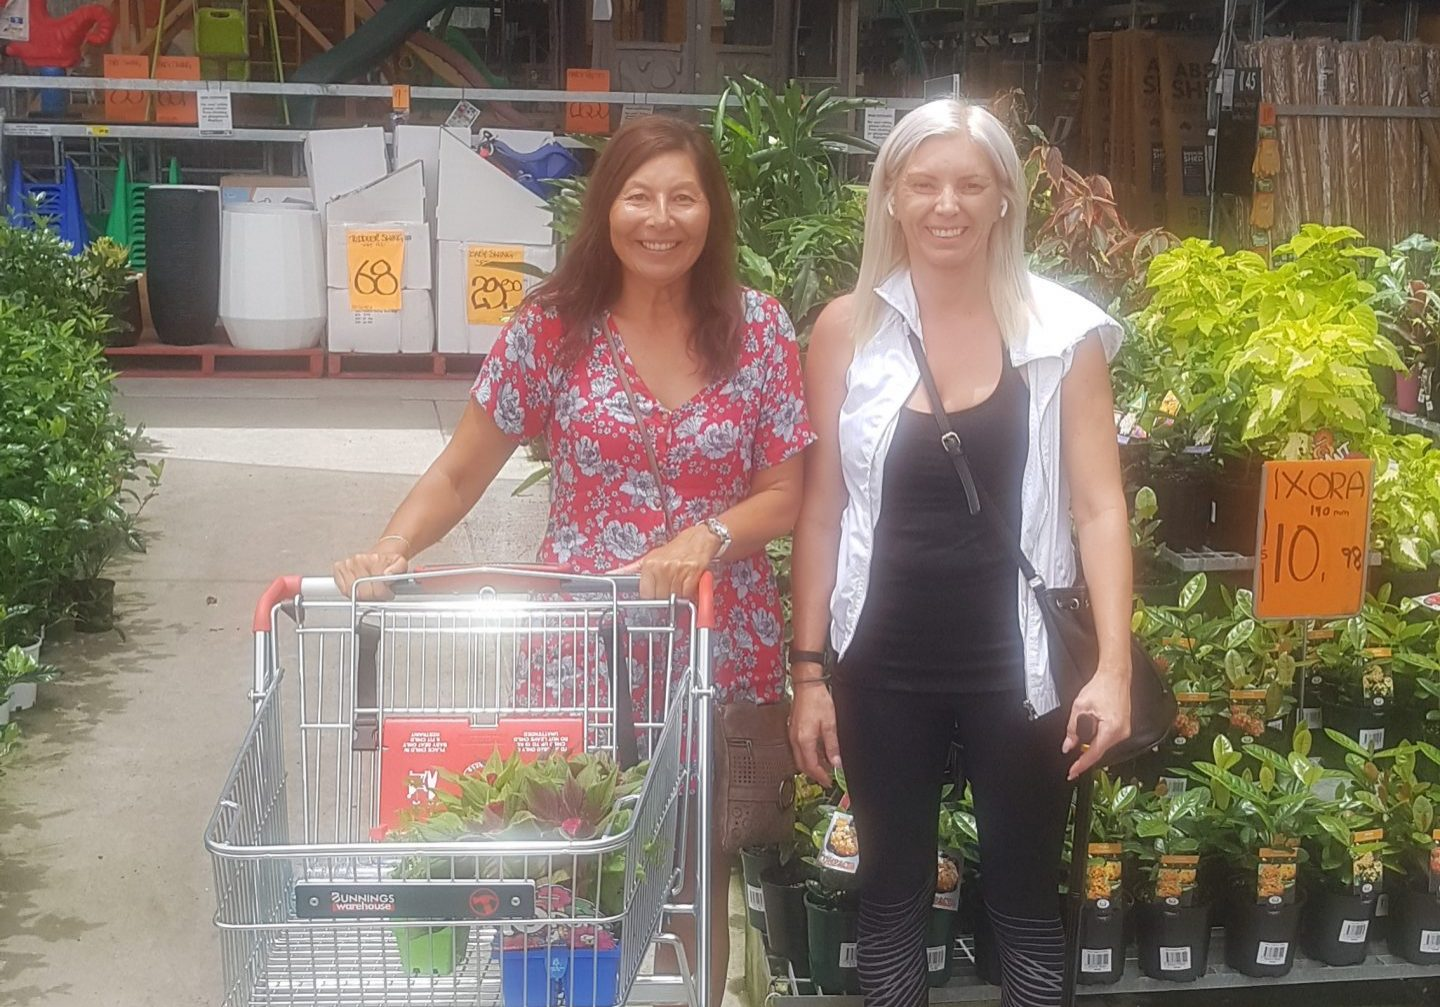 Bec and lady shopping at supermarket